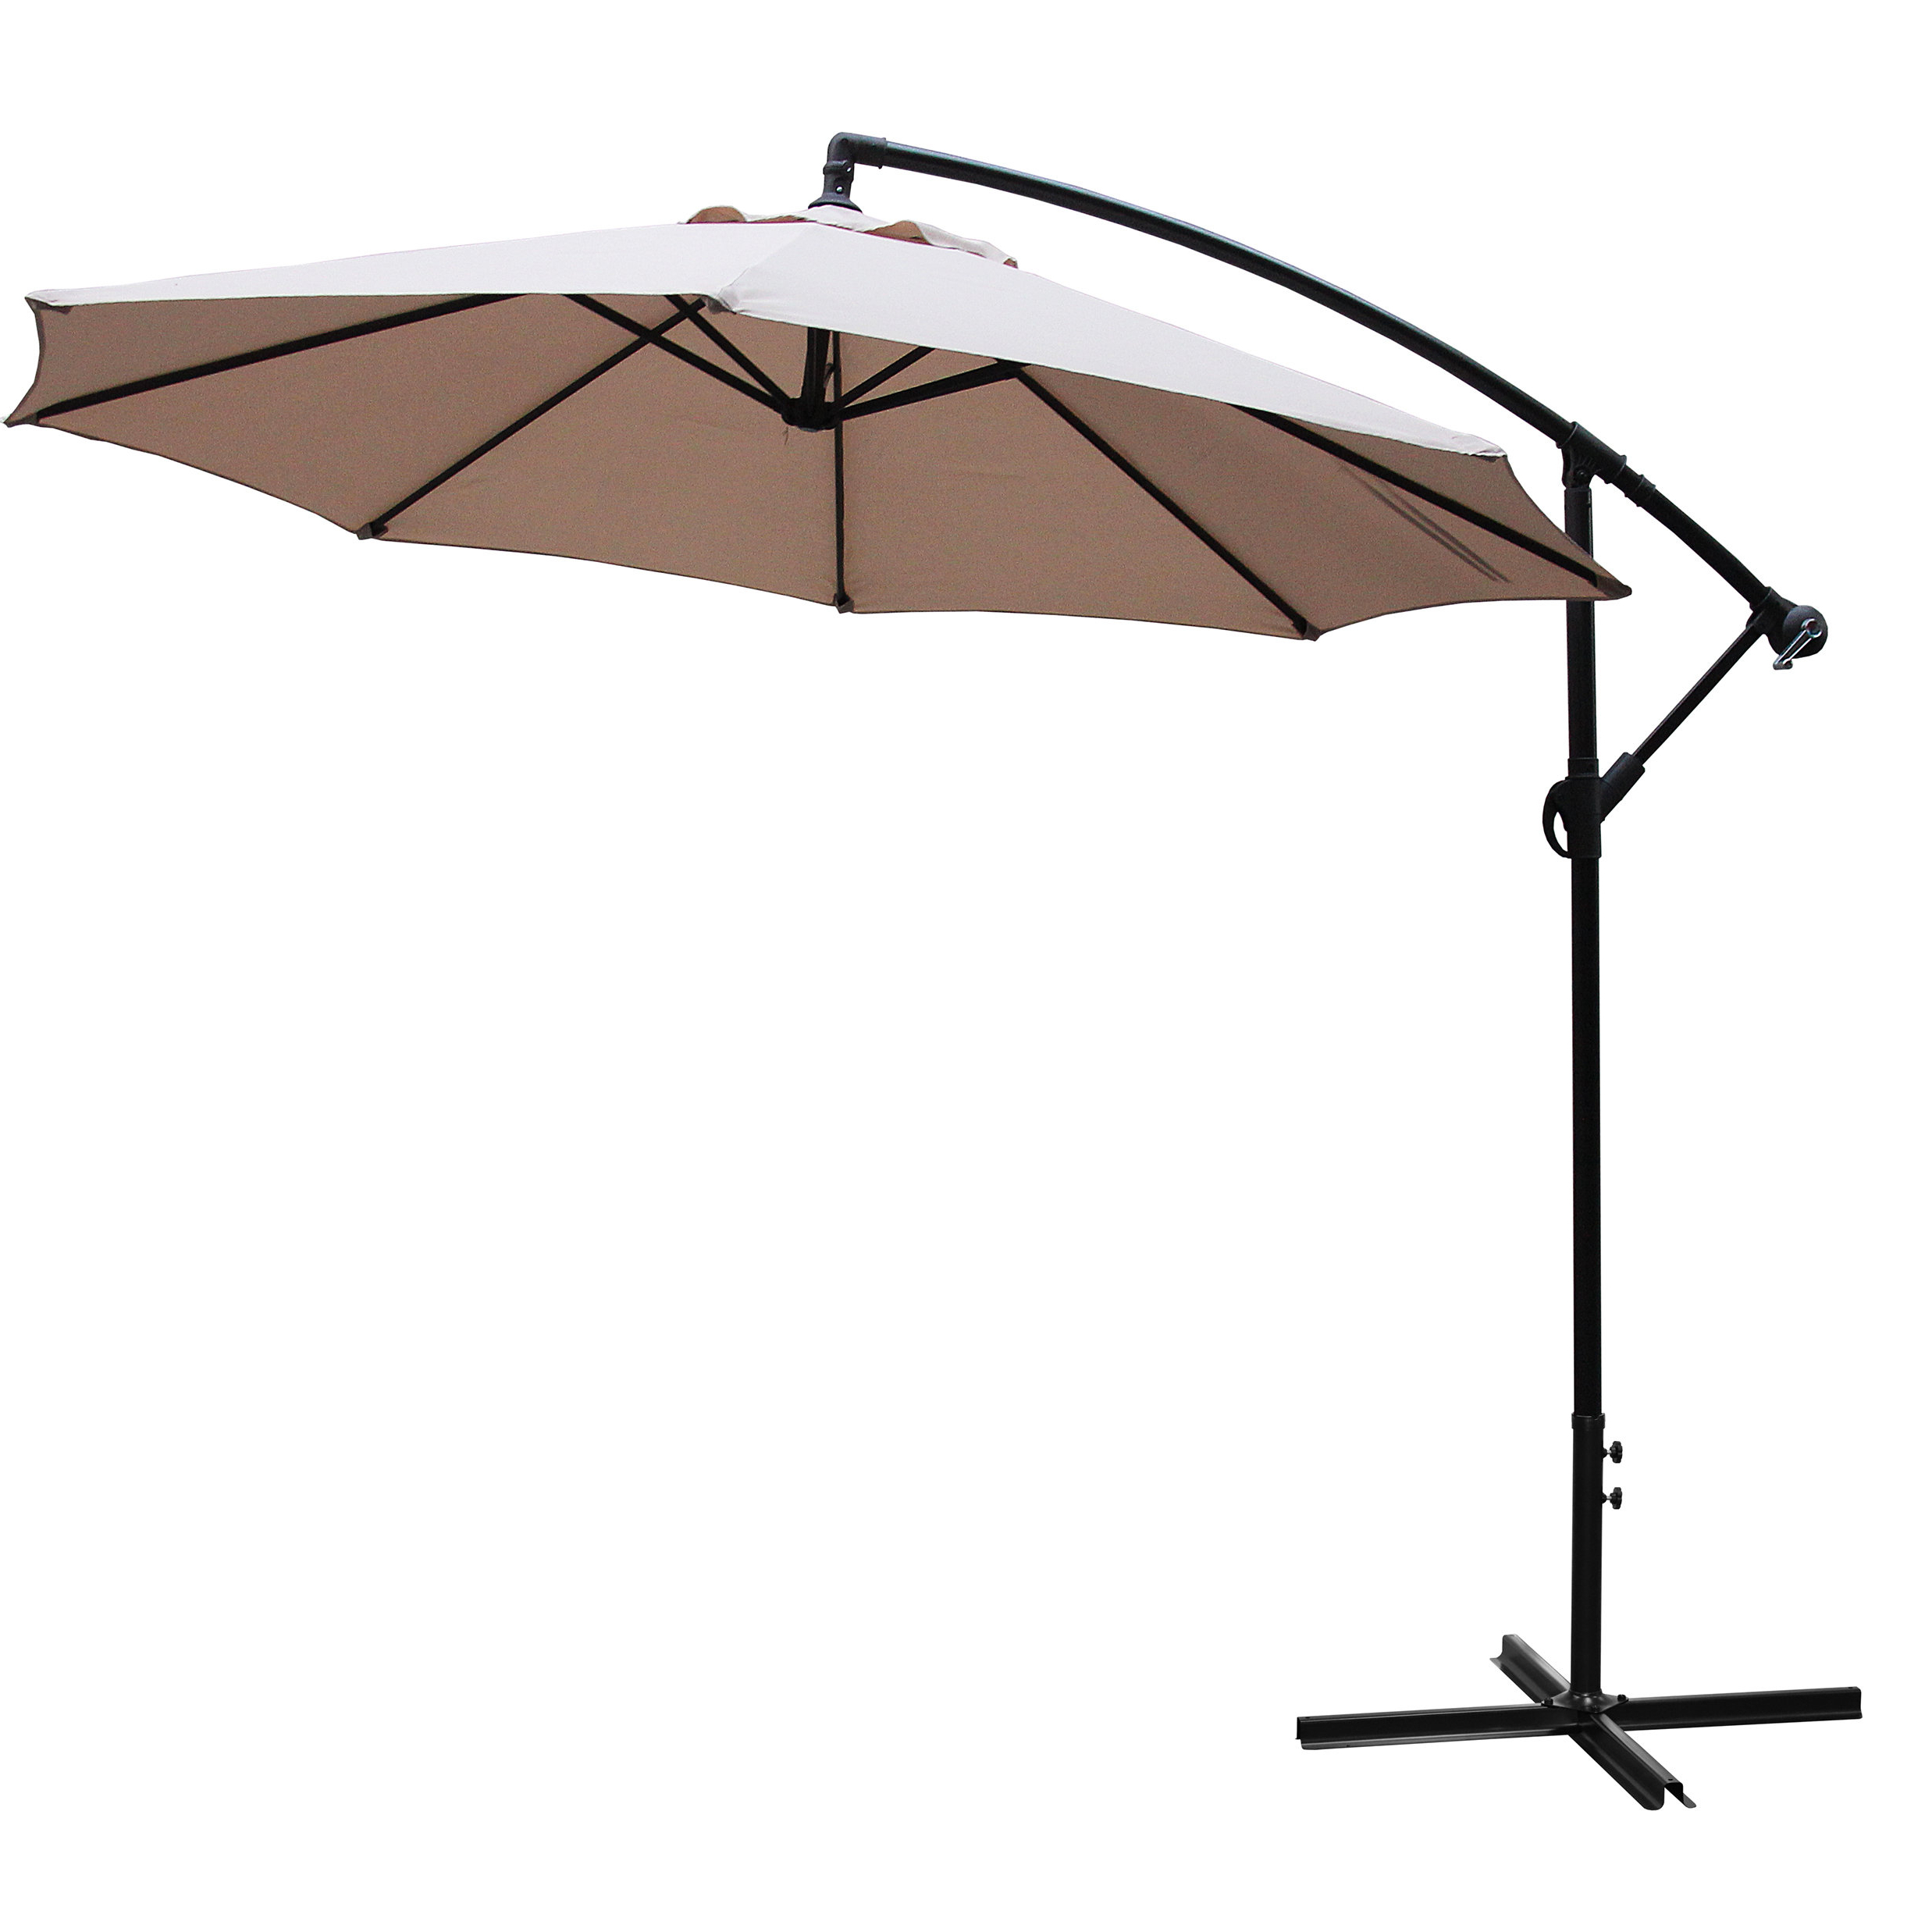 Best And Newest Iyanna Market Umbrellas Within Iyanna 10' Cantilever Umbrella (View 4 of 20)